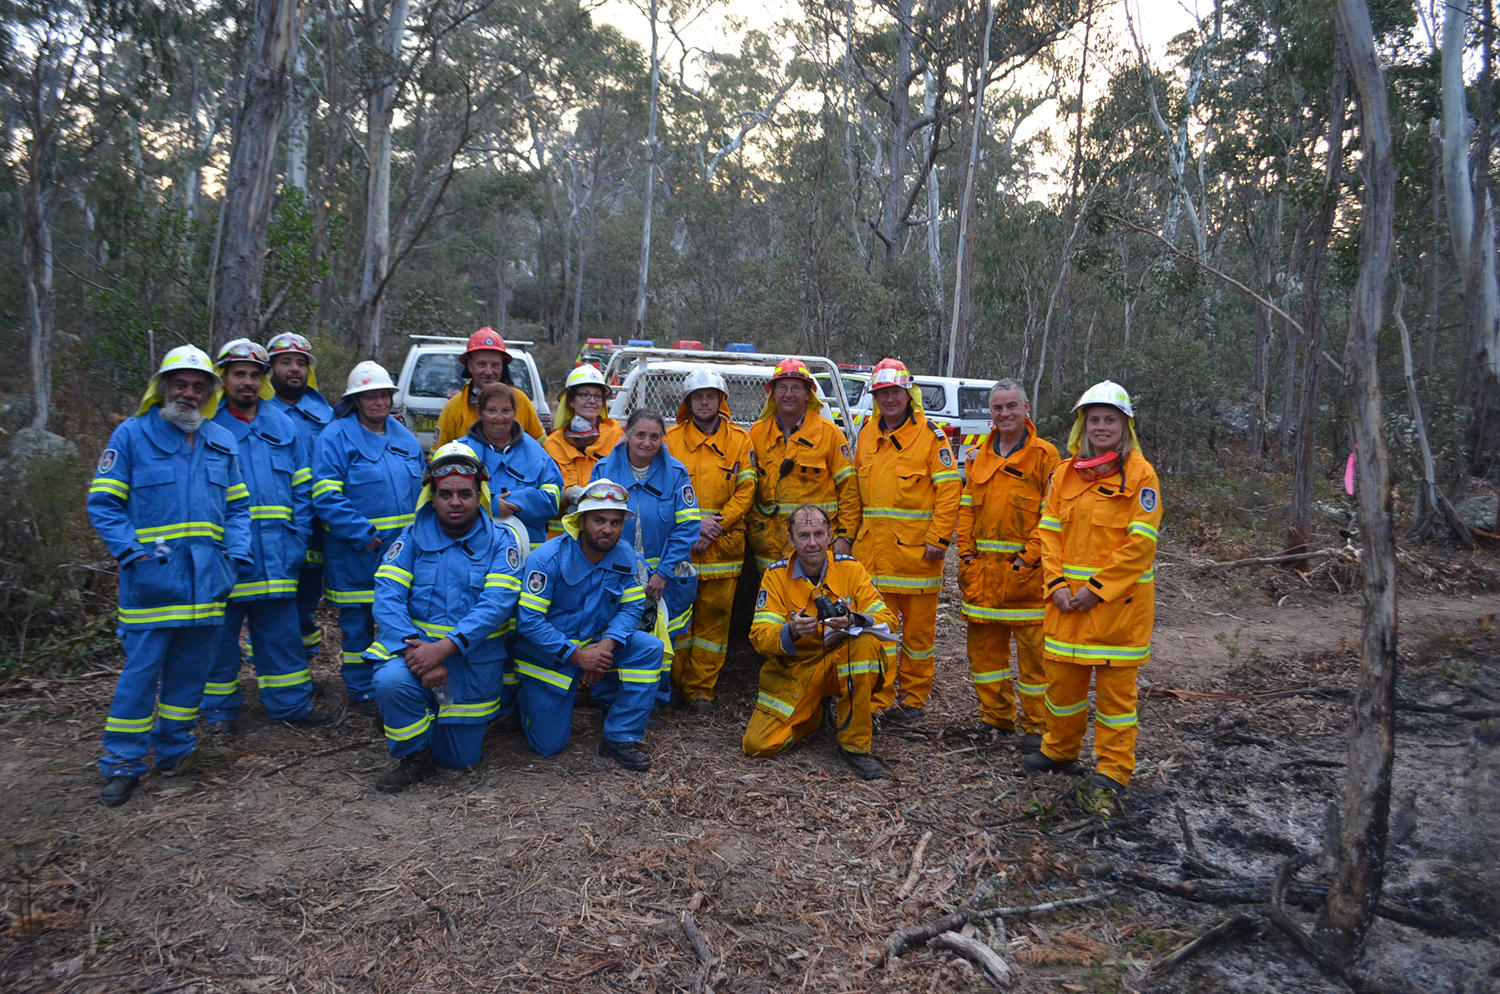 Guyra Rural Fire Brigade pictured with Bambai Indigenous Rangers